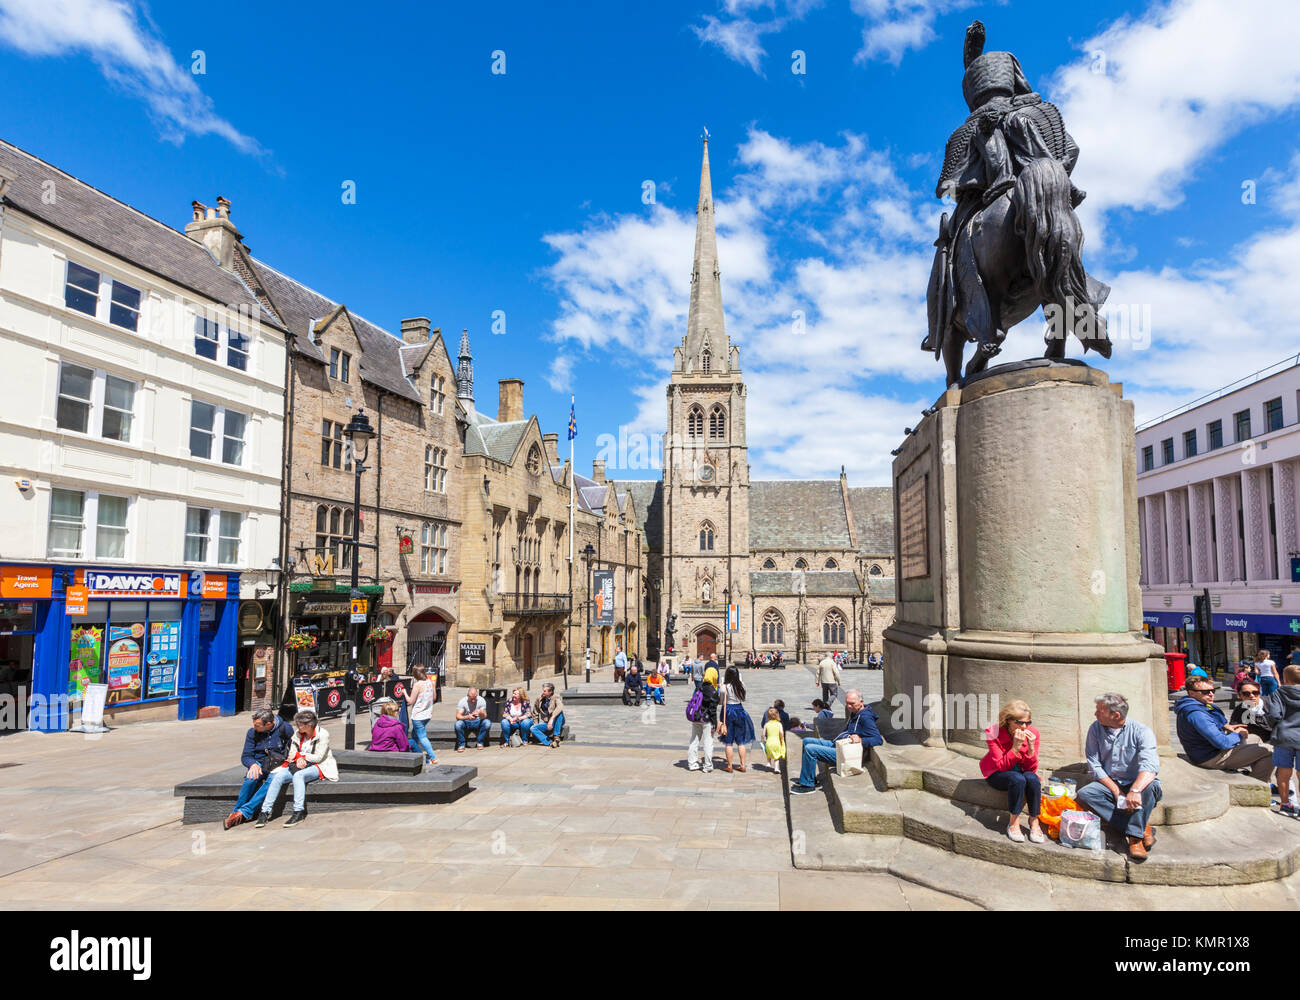 england durham england durham market place city of durham county durham northumberland england uk gb eu europe - Stock Image